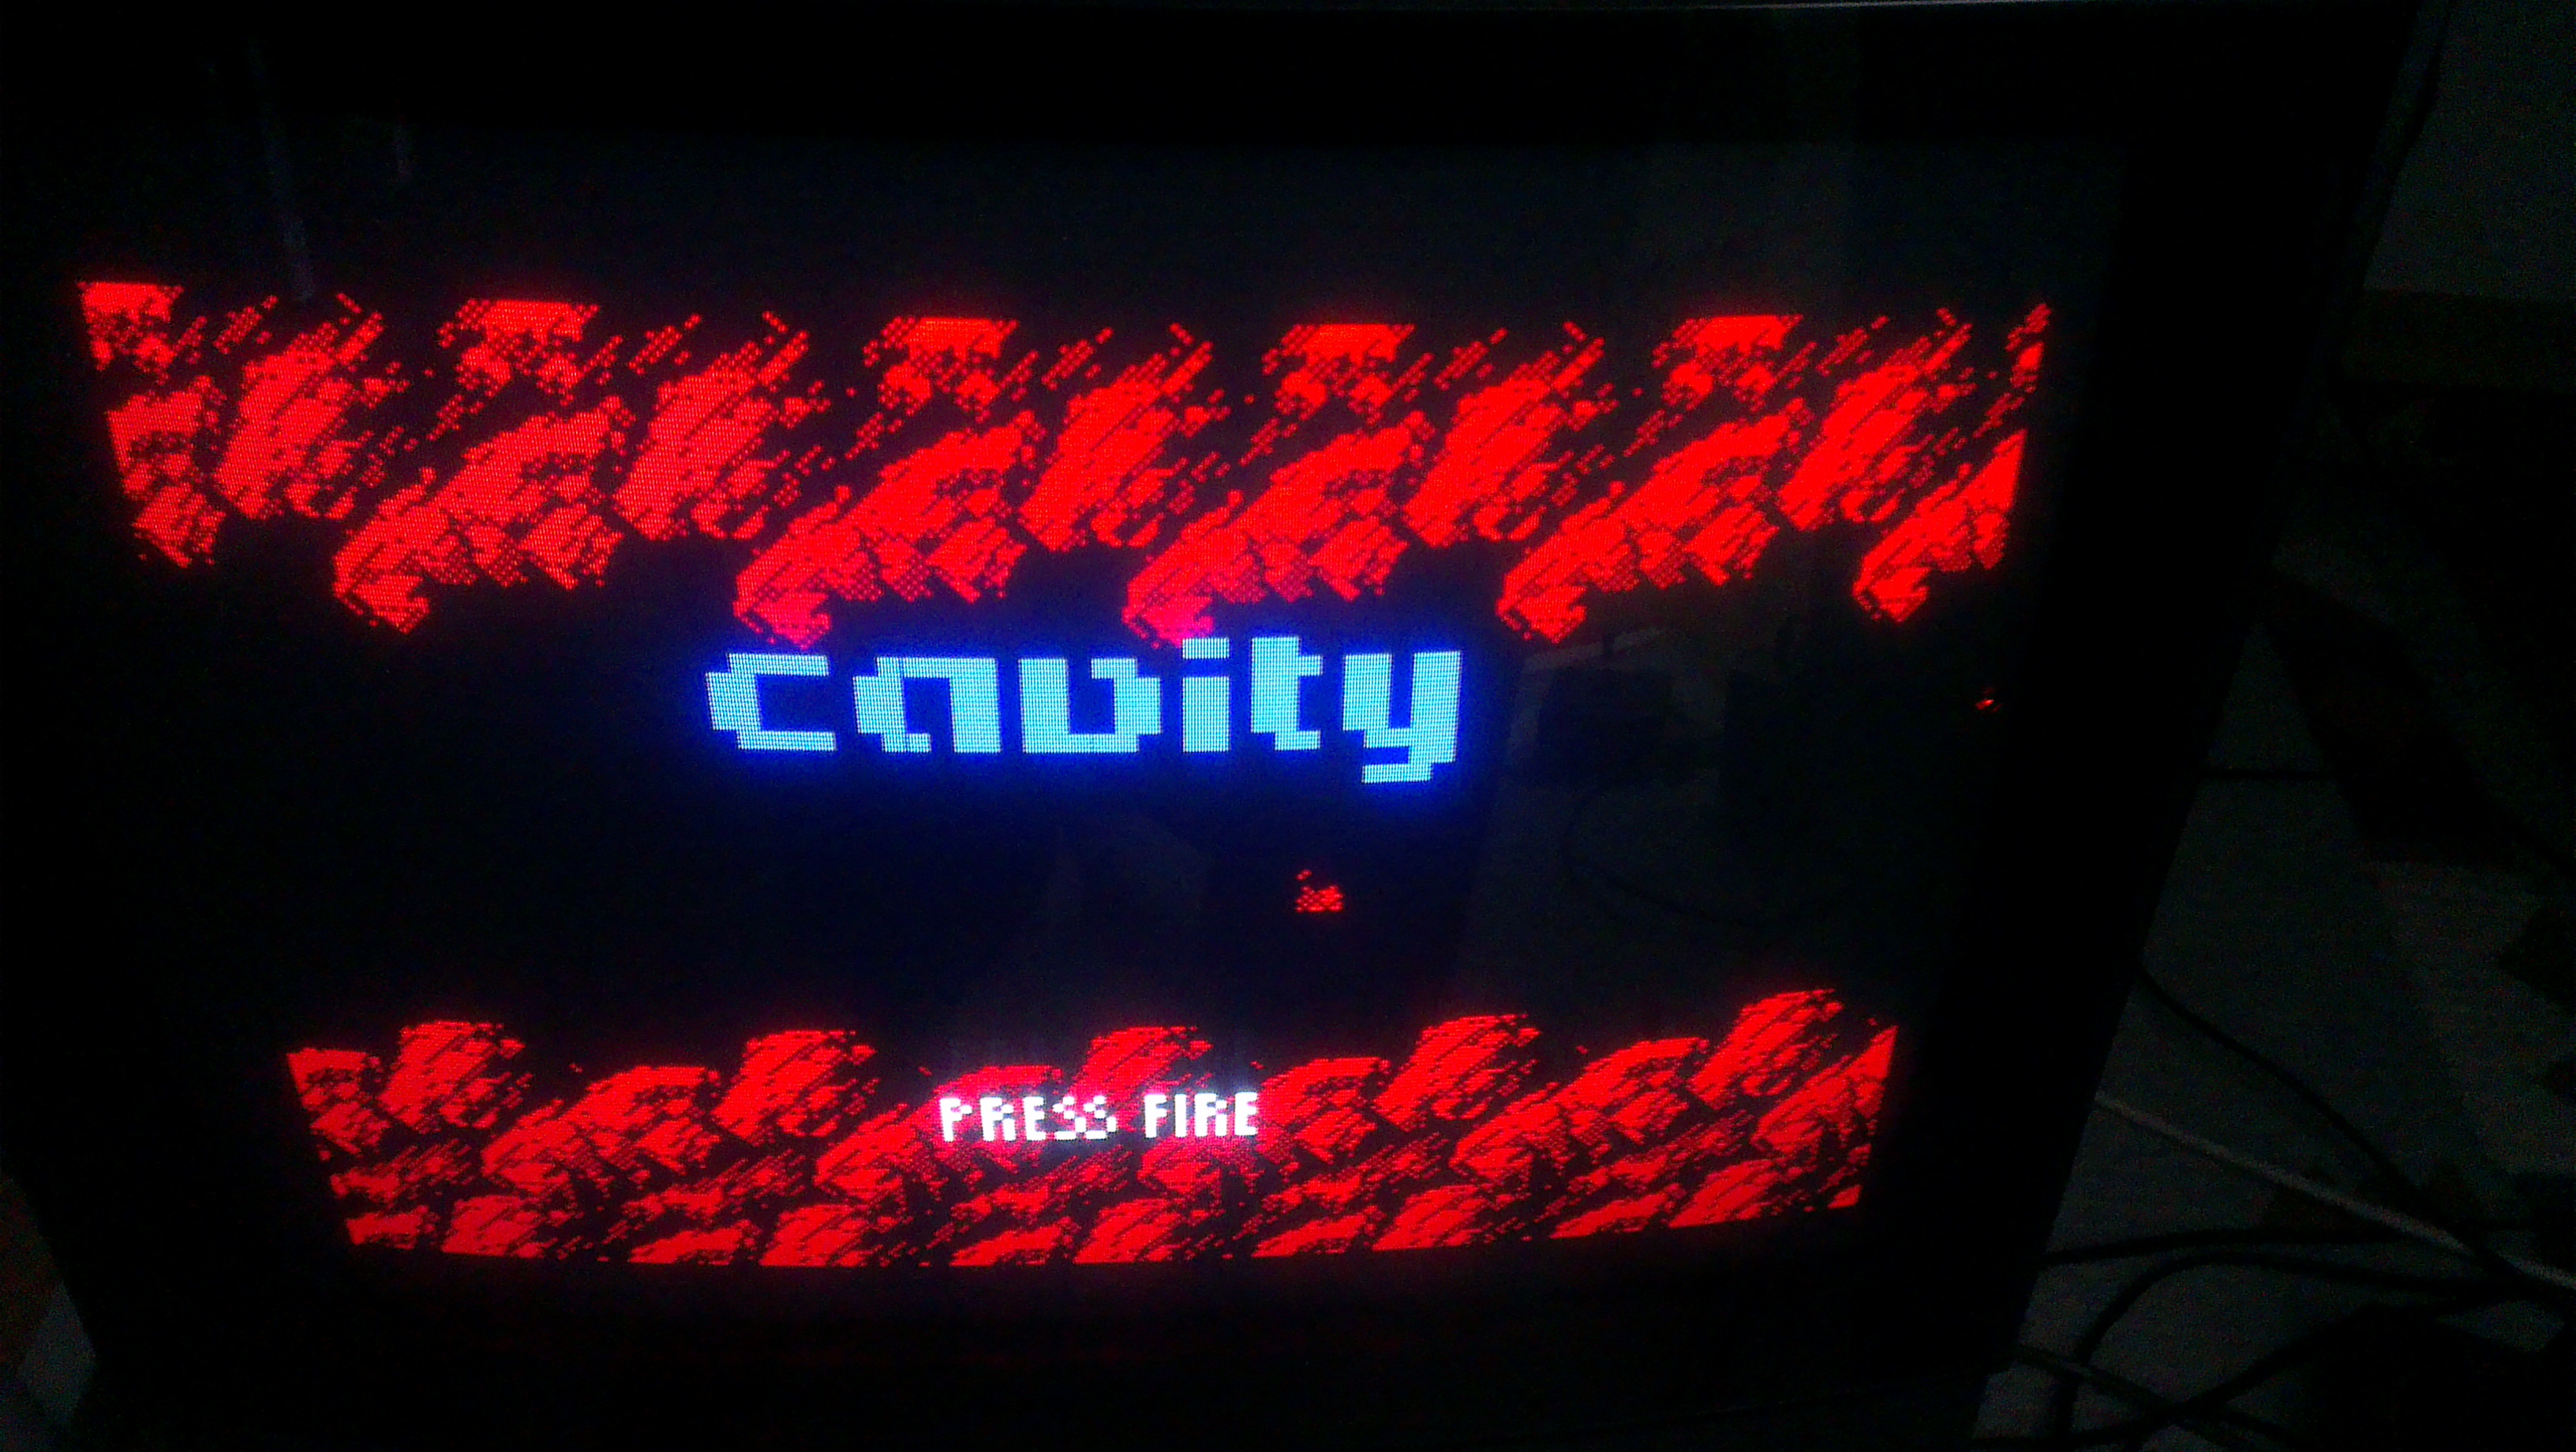 Nognir: Cavity (Odyssey 2 / Videopac) 704 points on 2014-05-24 03:55:13